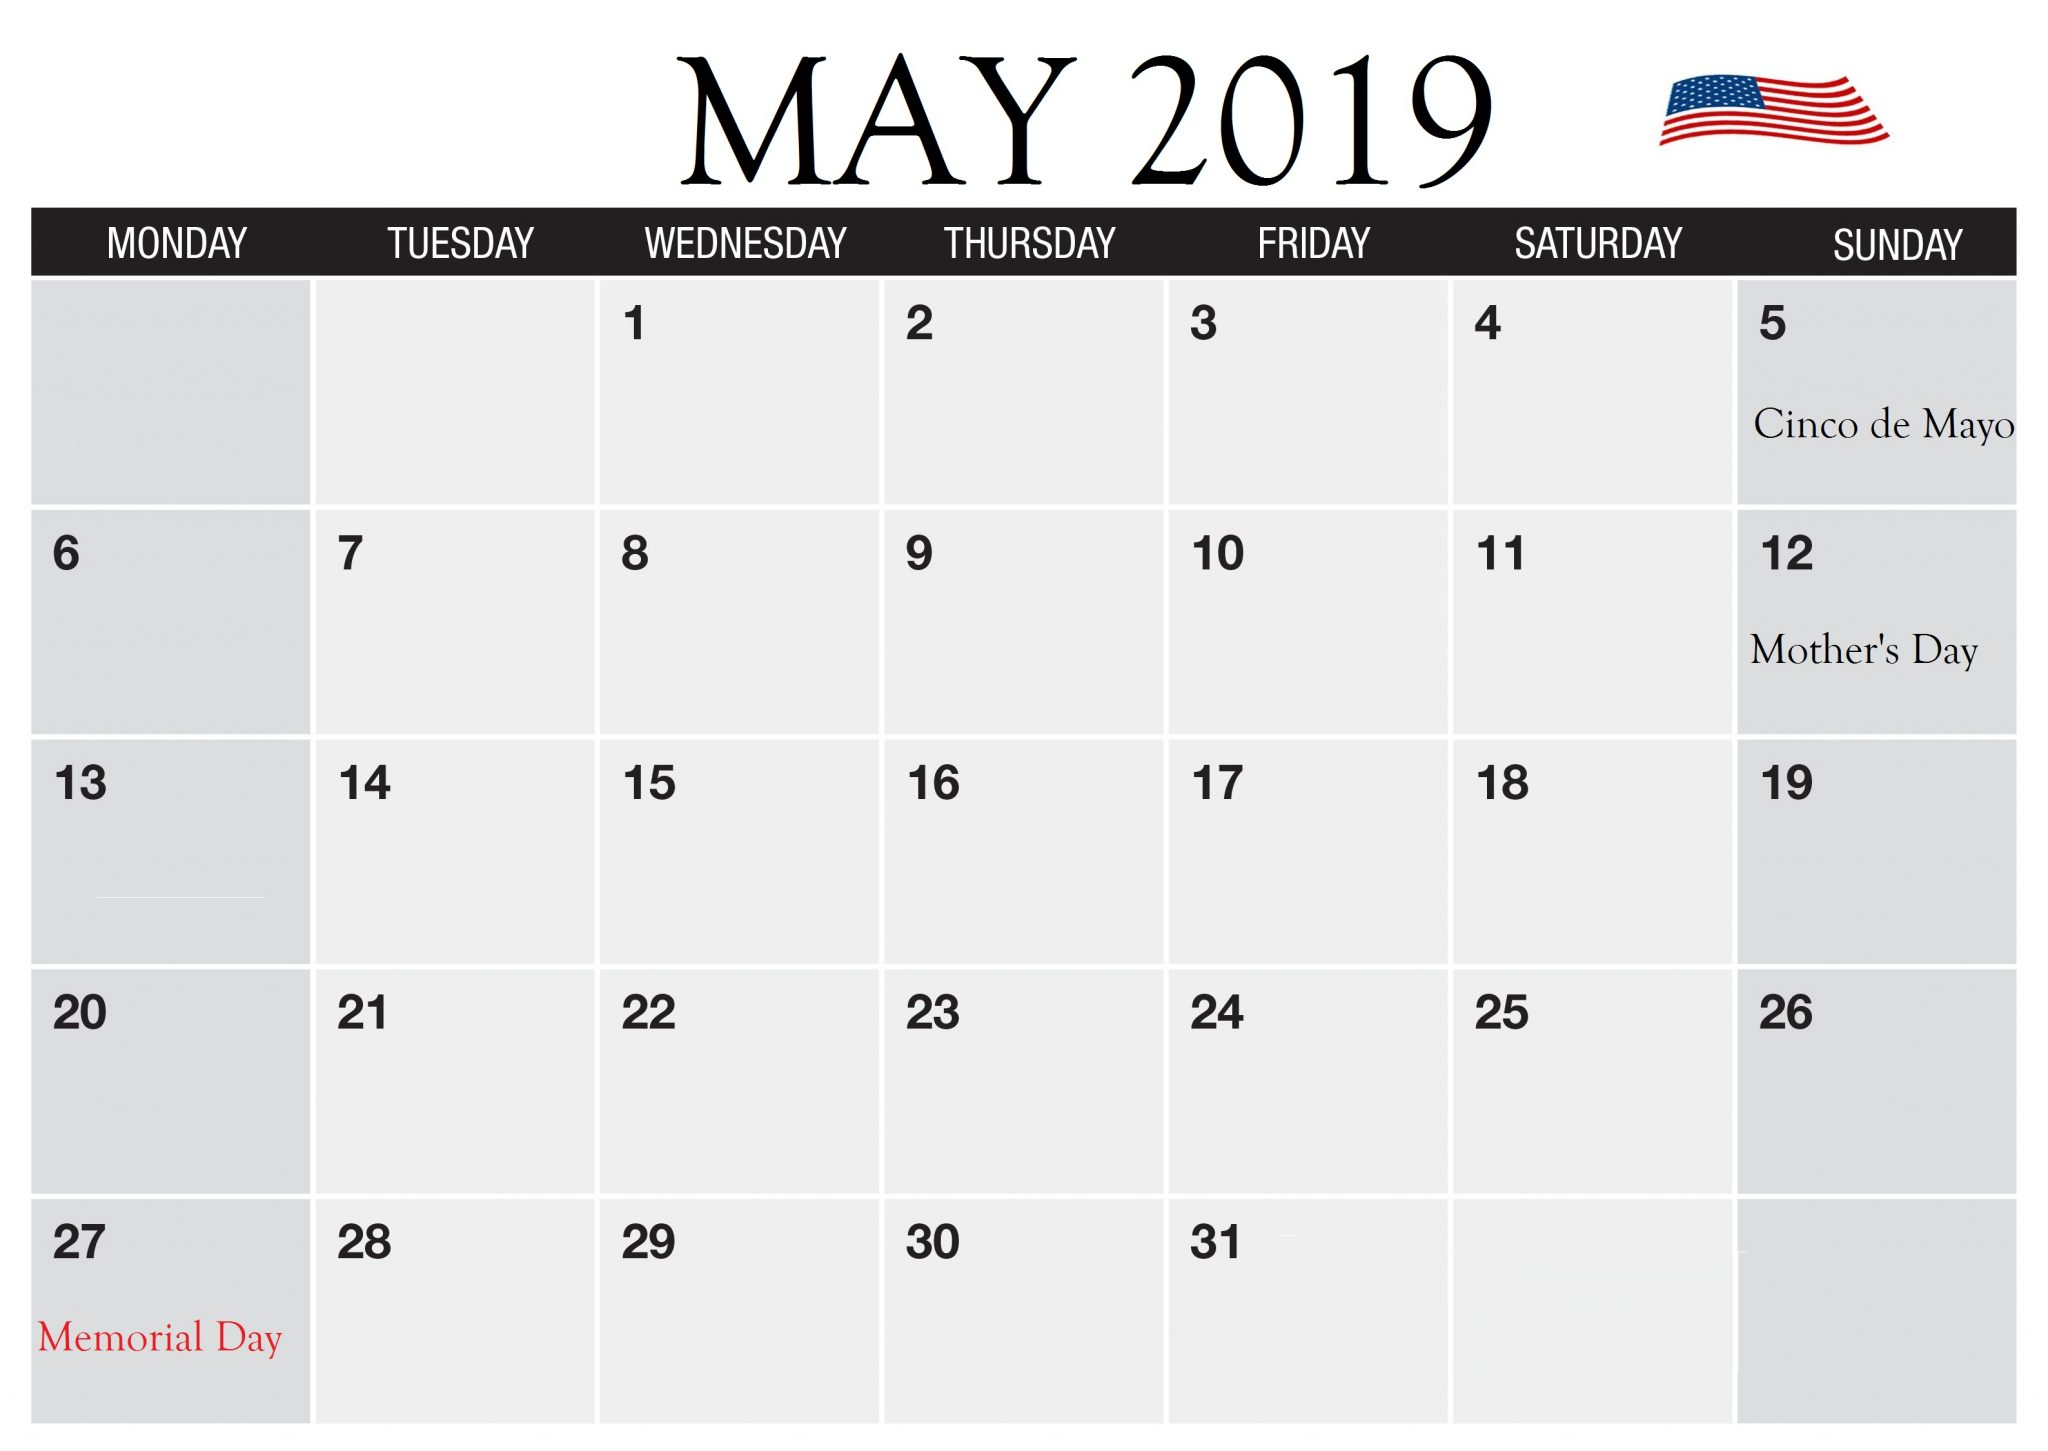 USA May 2019 Federal Holidays Calendar